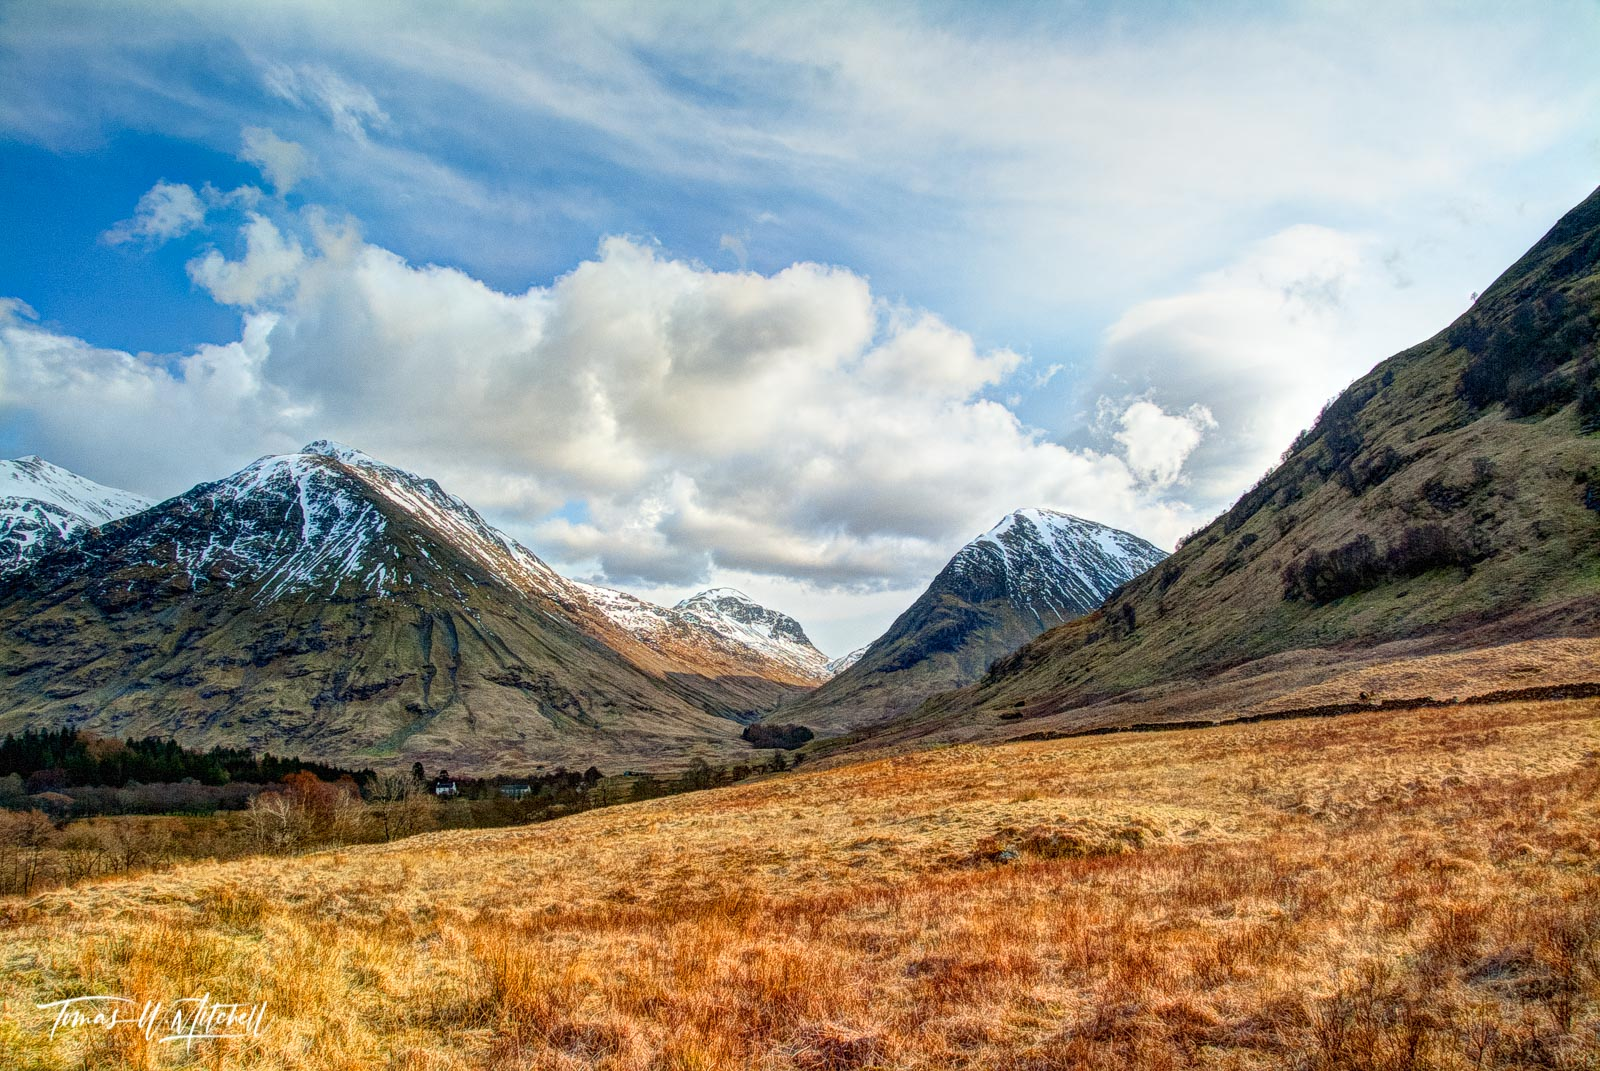 limited edition, museum grade, fine art, prints, glen coe, scotland, clouds, sky, warm glow, fields of gold, march, mood, magical, village, photo